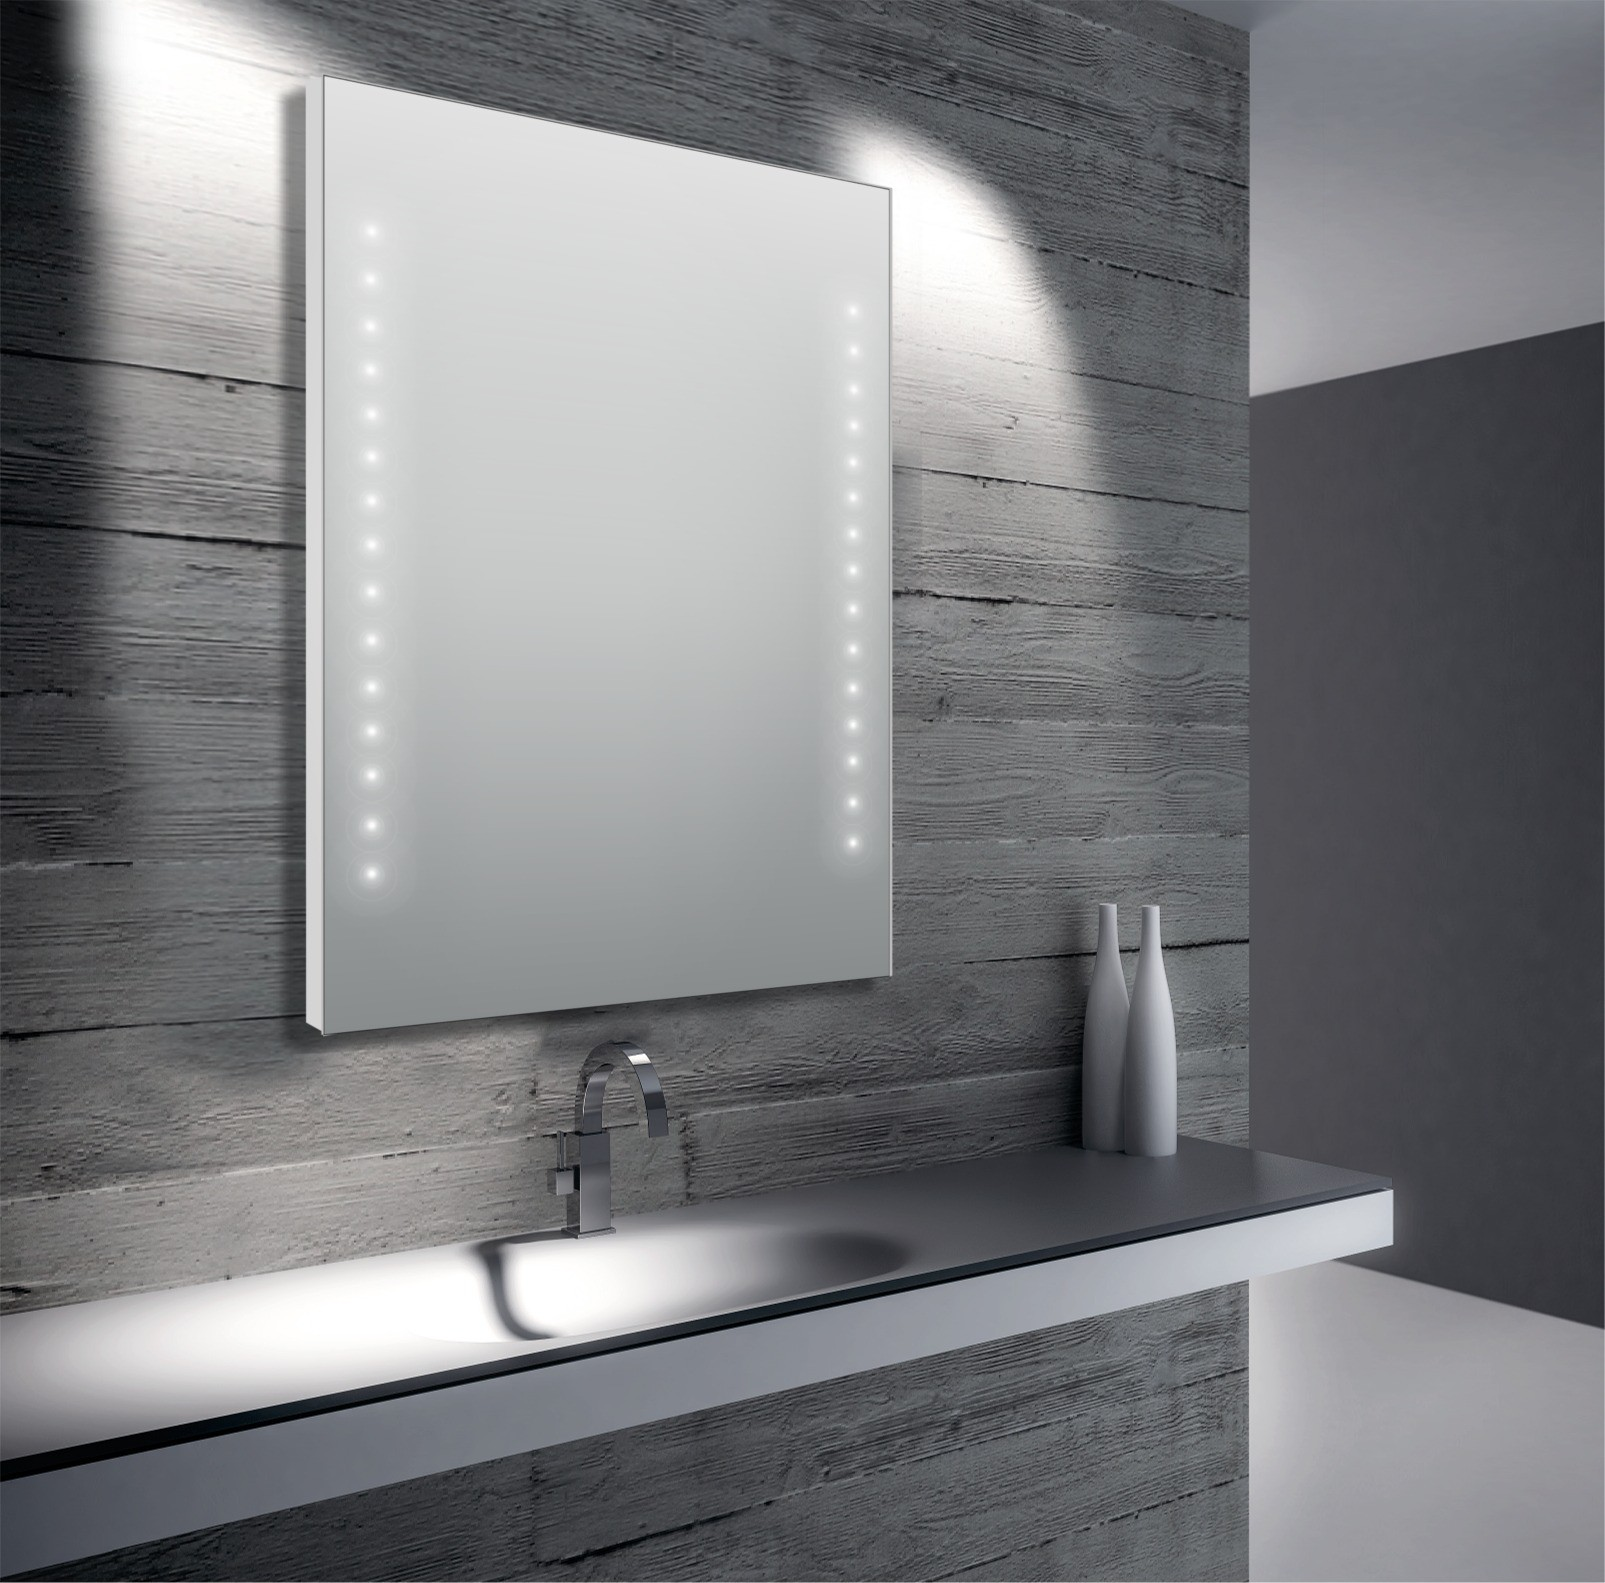 https://www.mondialshop.it/23208/specchio-da-bagno-led-60x80-o-80x60-giada-68.jpg